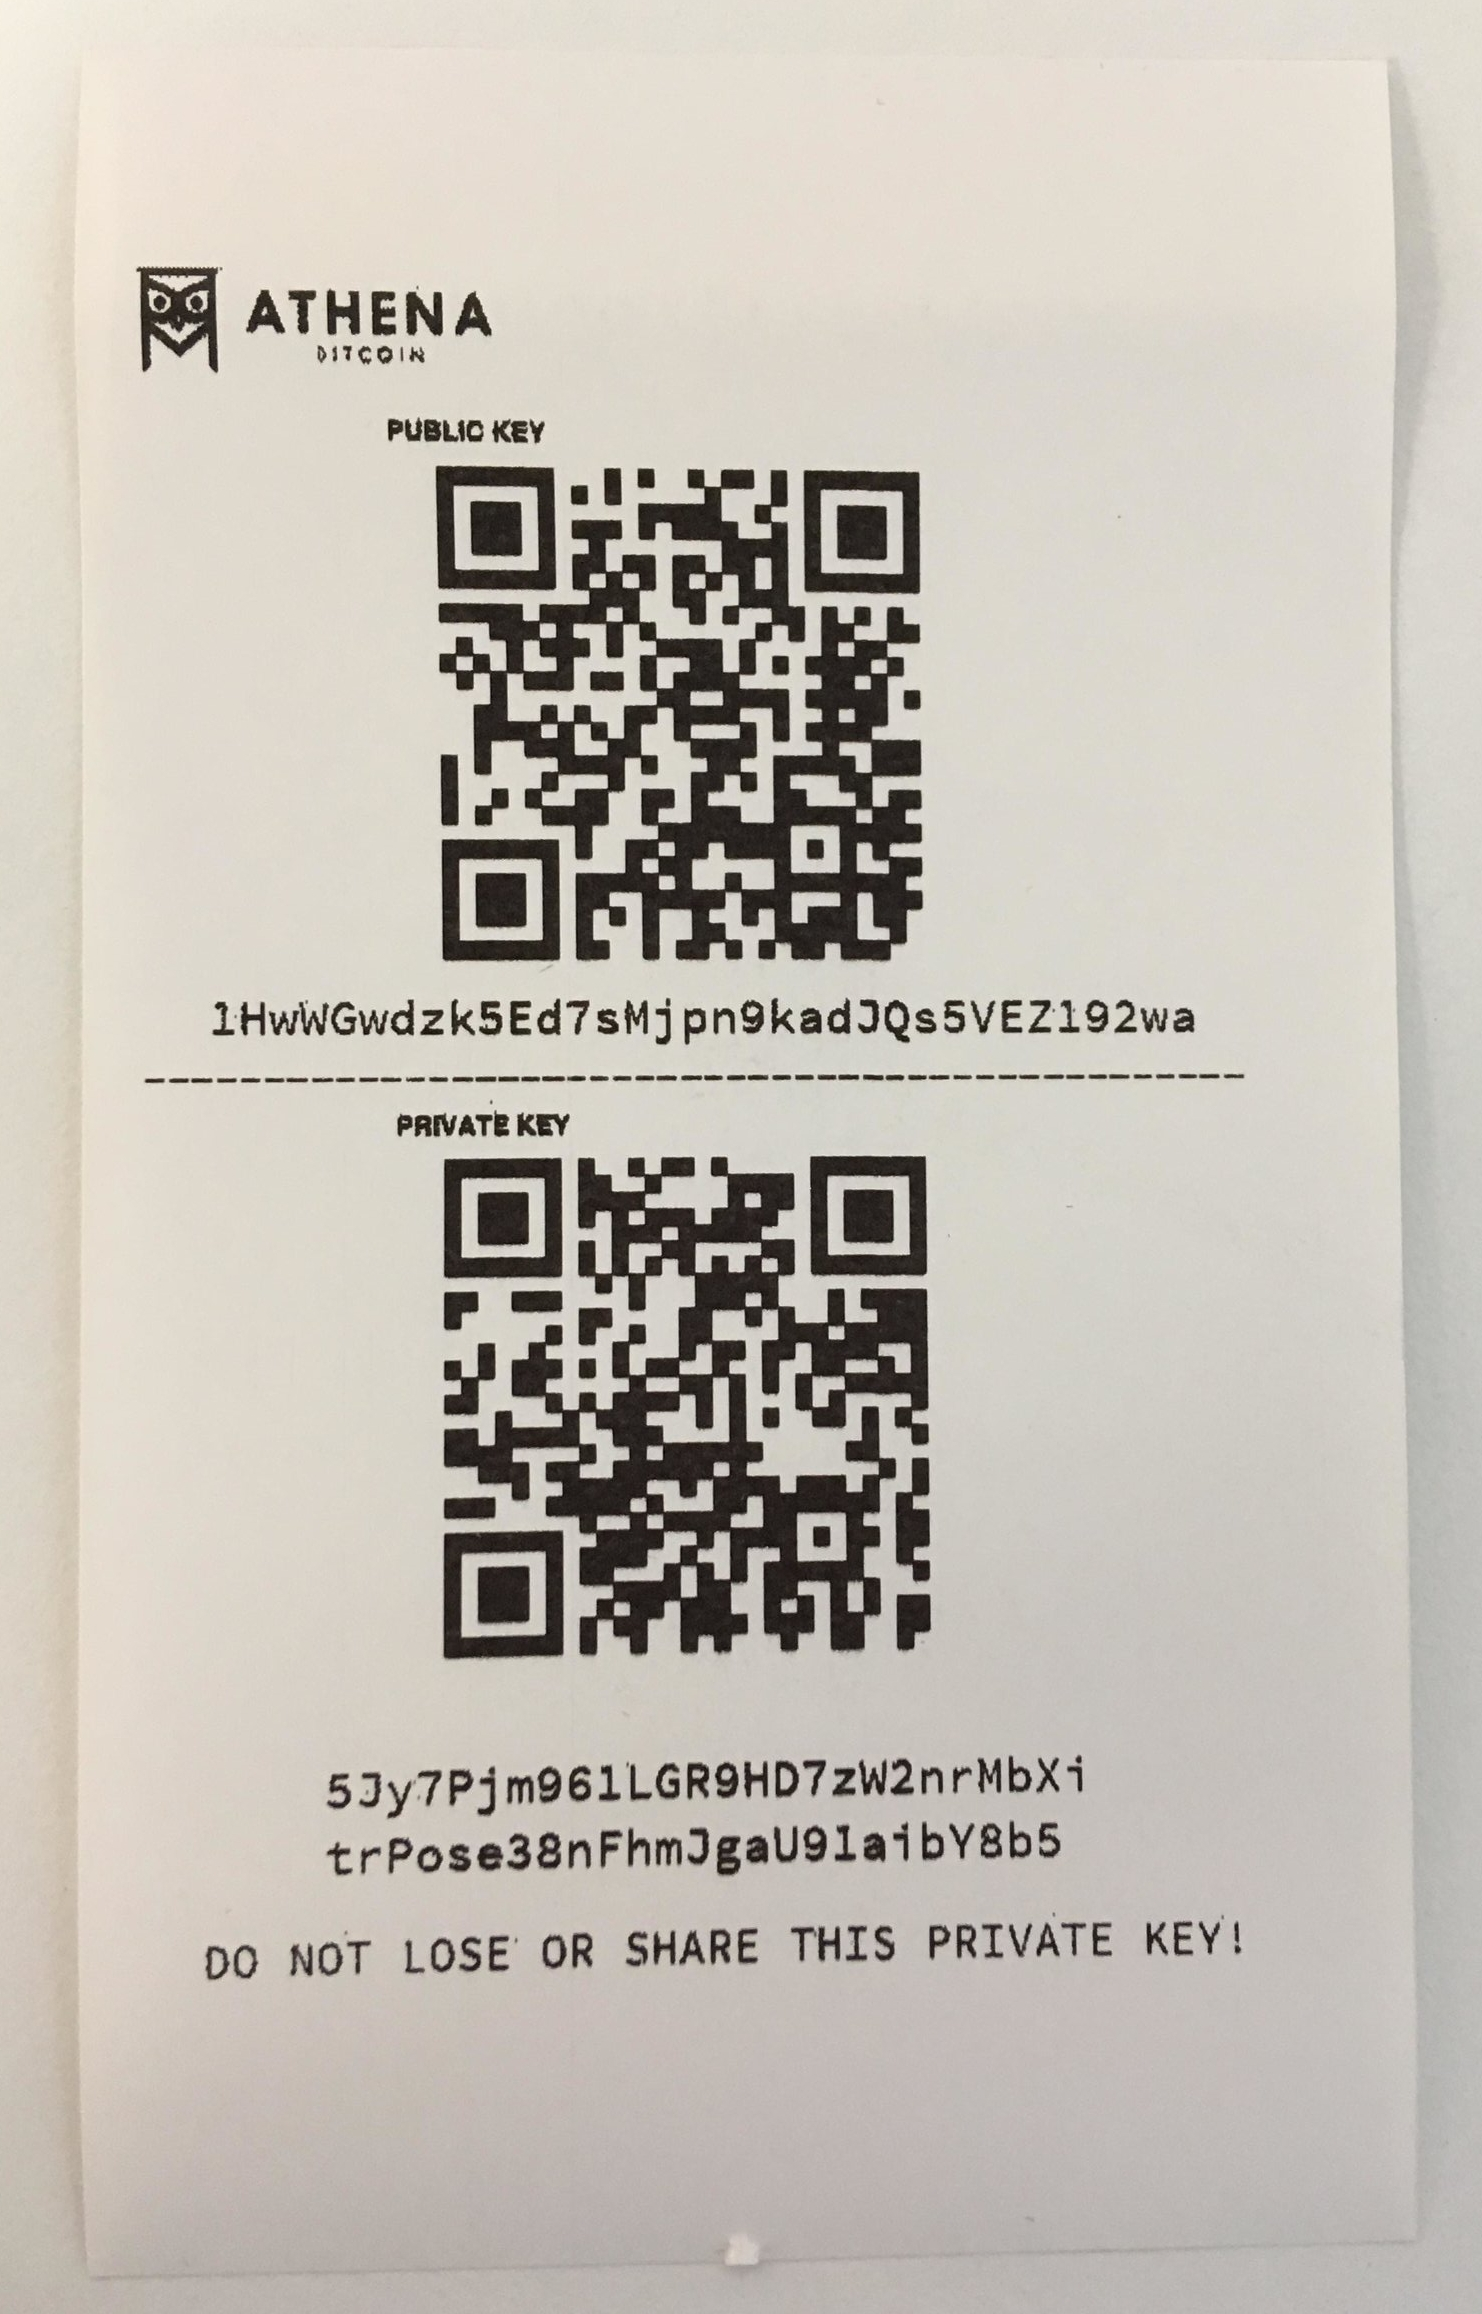 If you printed a paper wallet you can use the Edge wallet app to access that bitcoin or see our  Paper Wallet Guide  for Litecoin and more options.